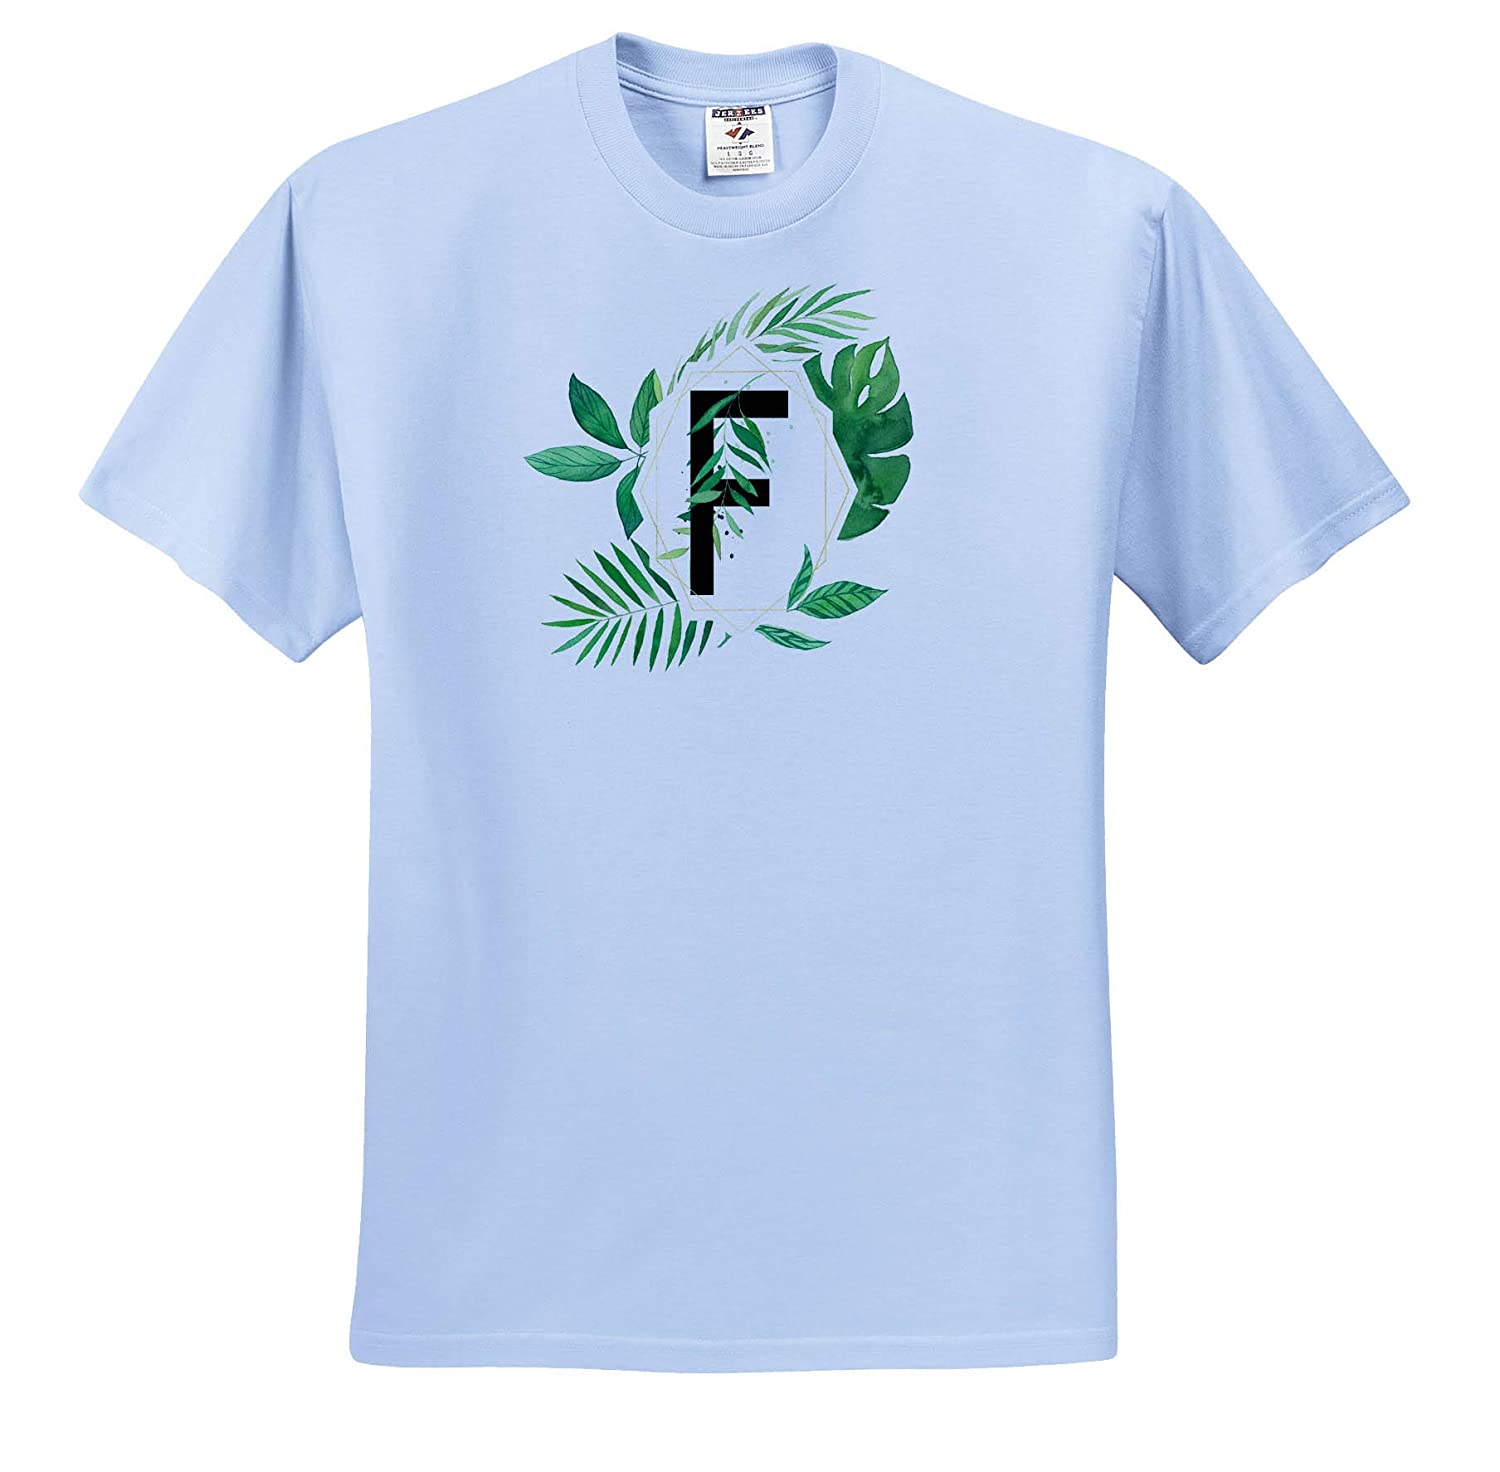 Monograms Adult T-Shirt XL Chic Image of Watercolor Tropical Leaves Monogram F ts/_318123 3dRose Anne Marie Baugh